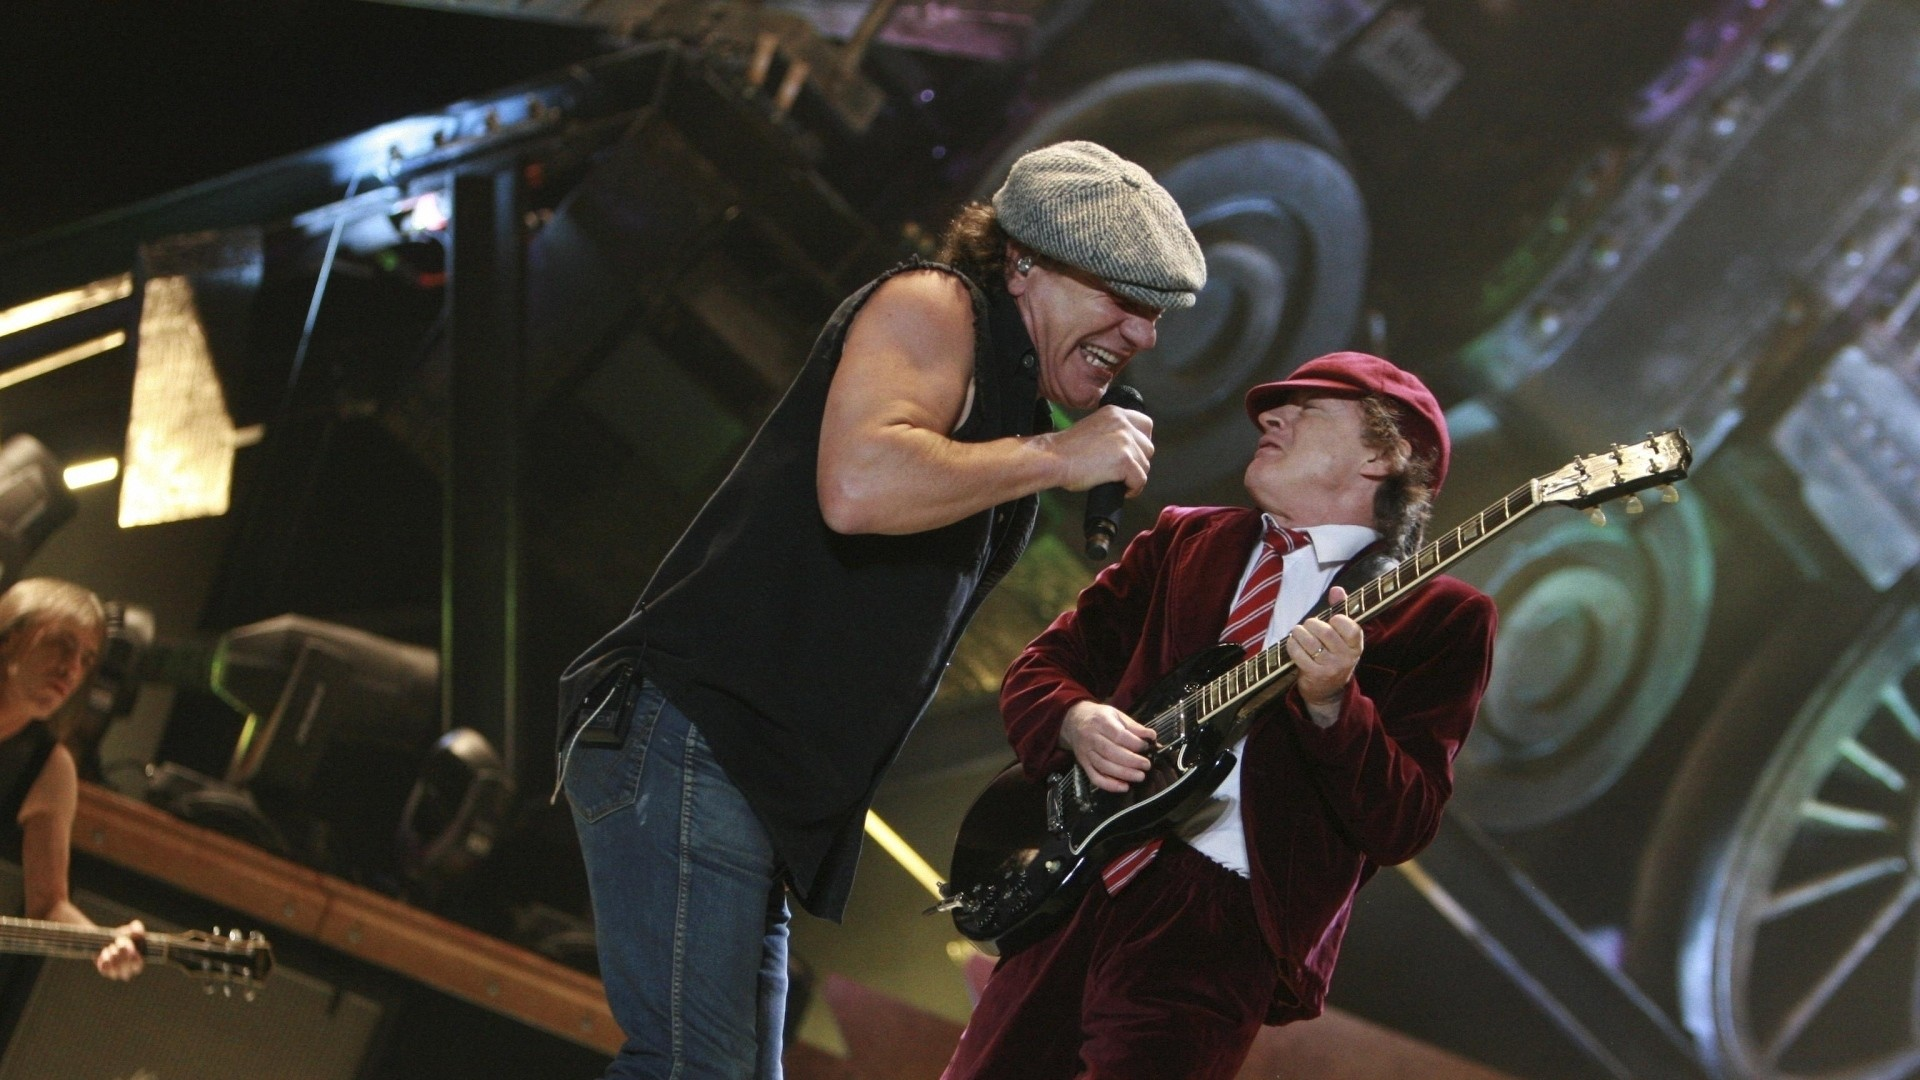 1920x1080  Wallpaper acdc, group, scene, solo, guitar-player